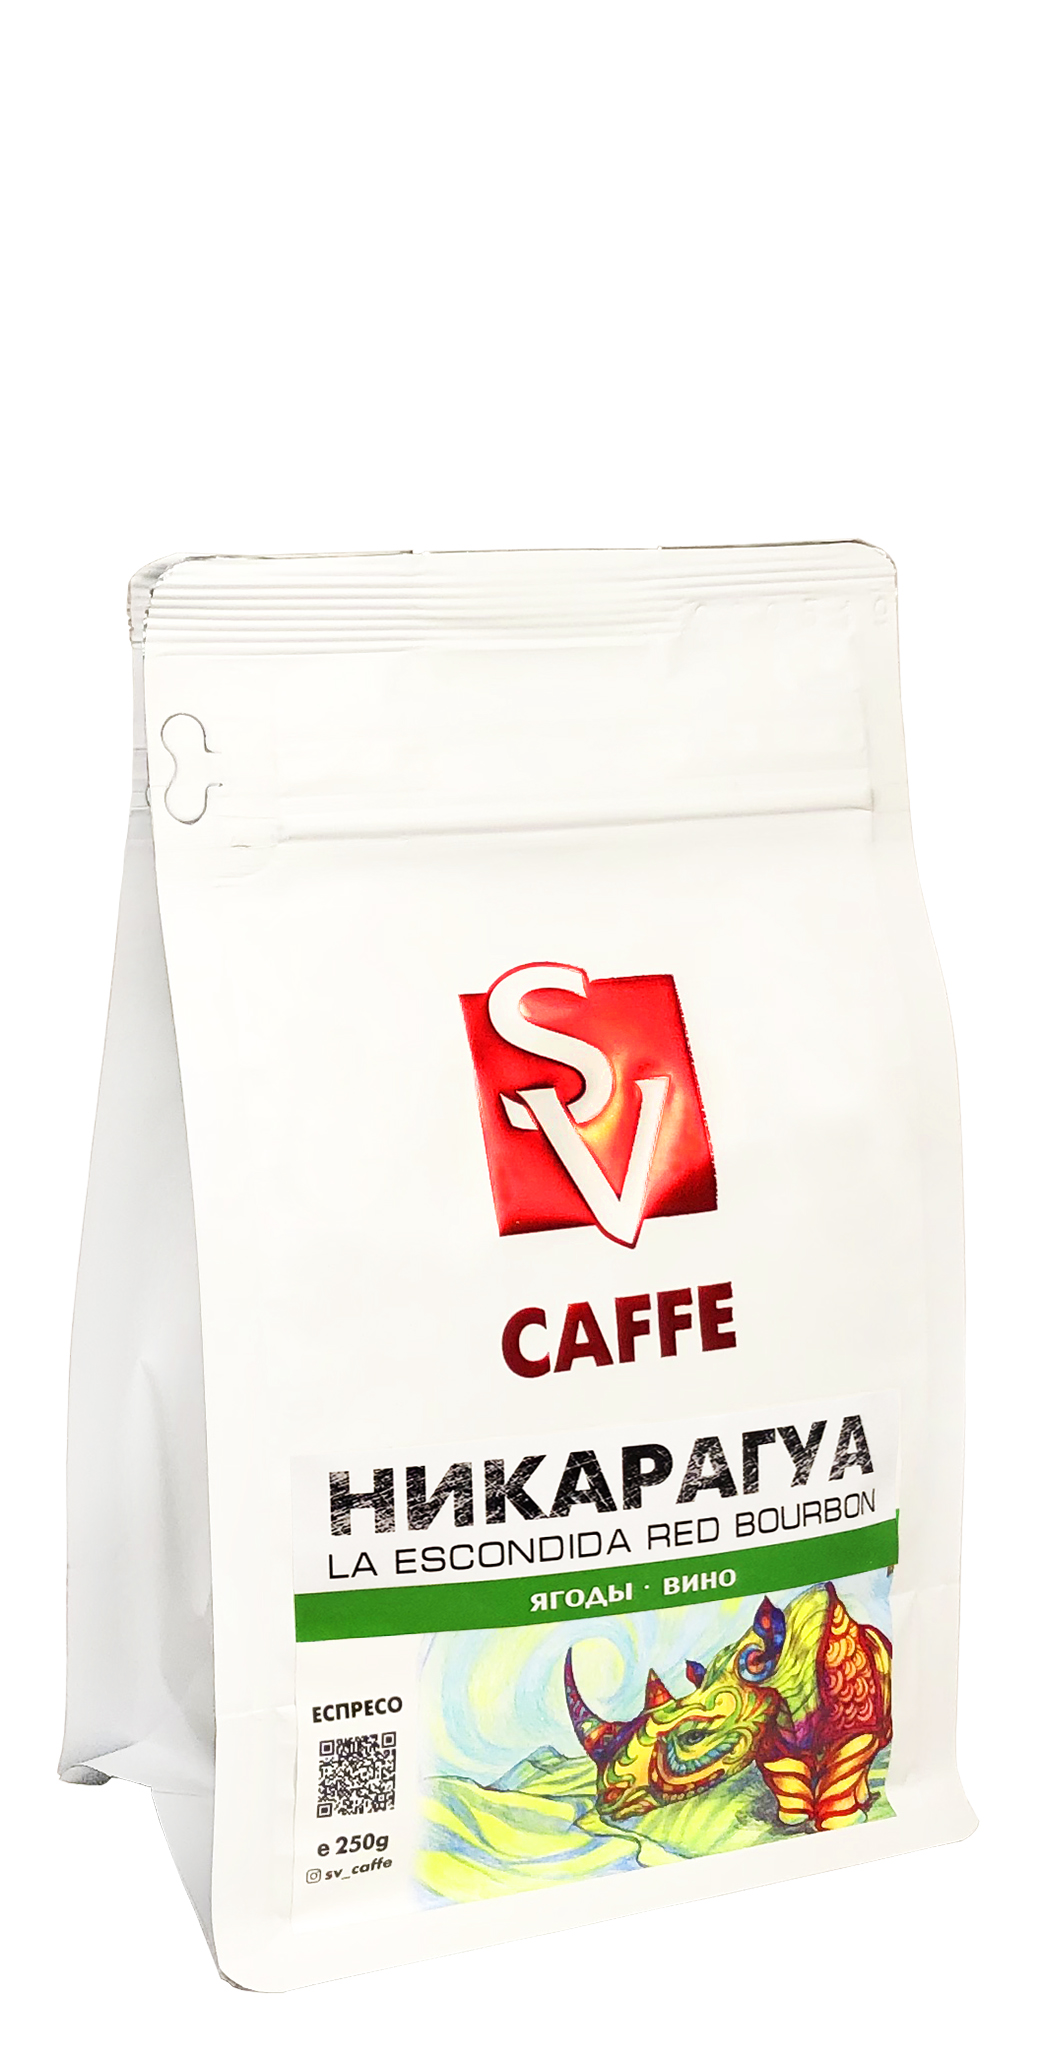 SV caffe 250г Никарагуа La Escondida Red Bourbon (22.06.2020)